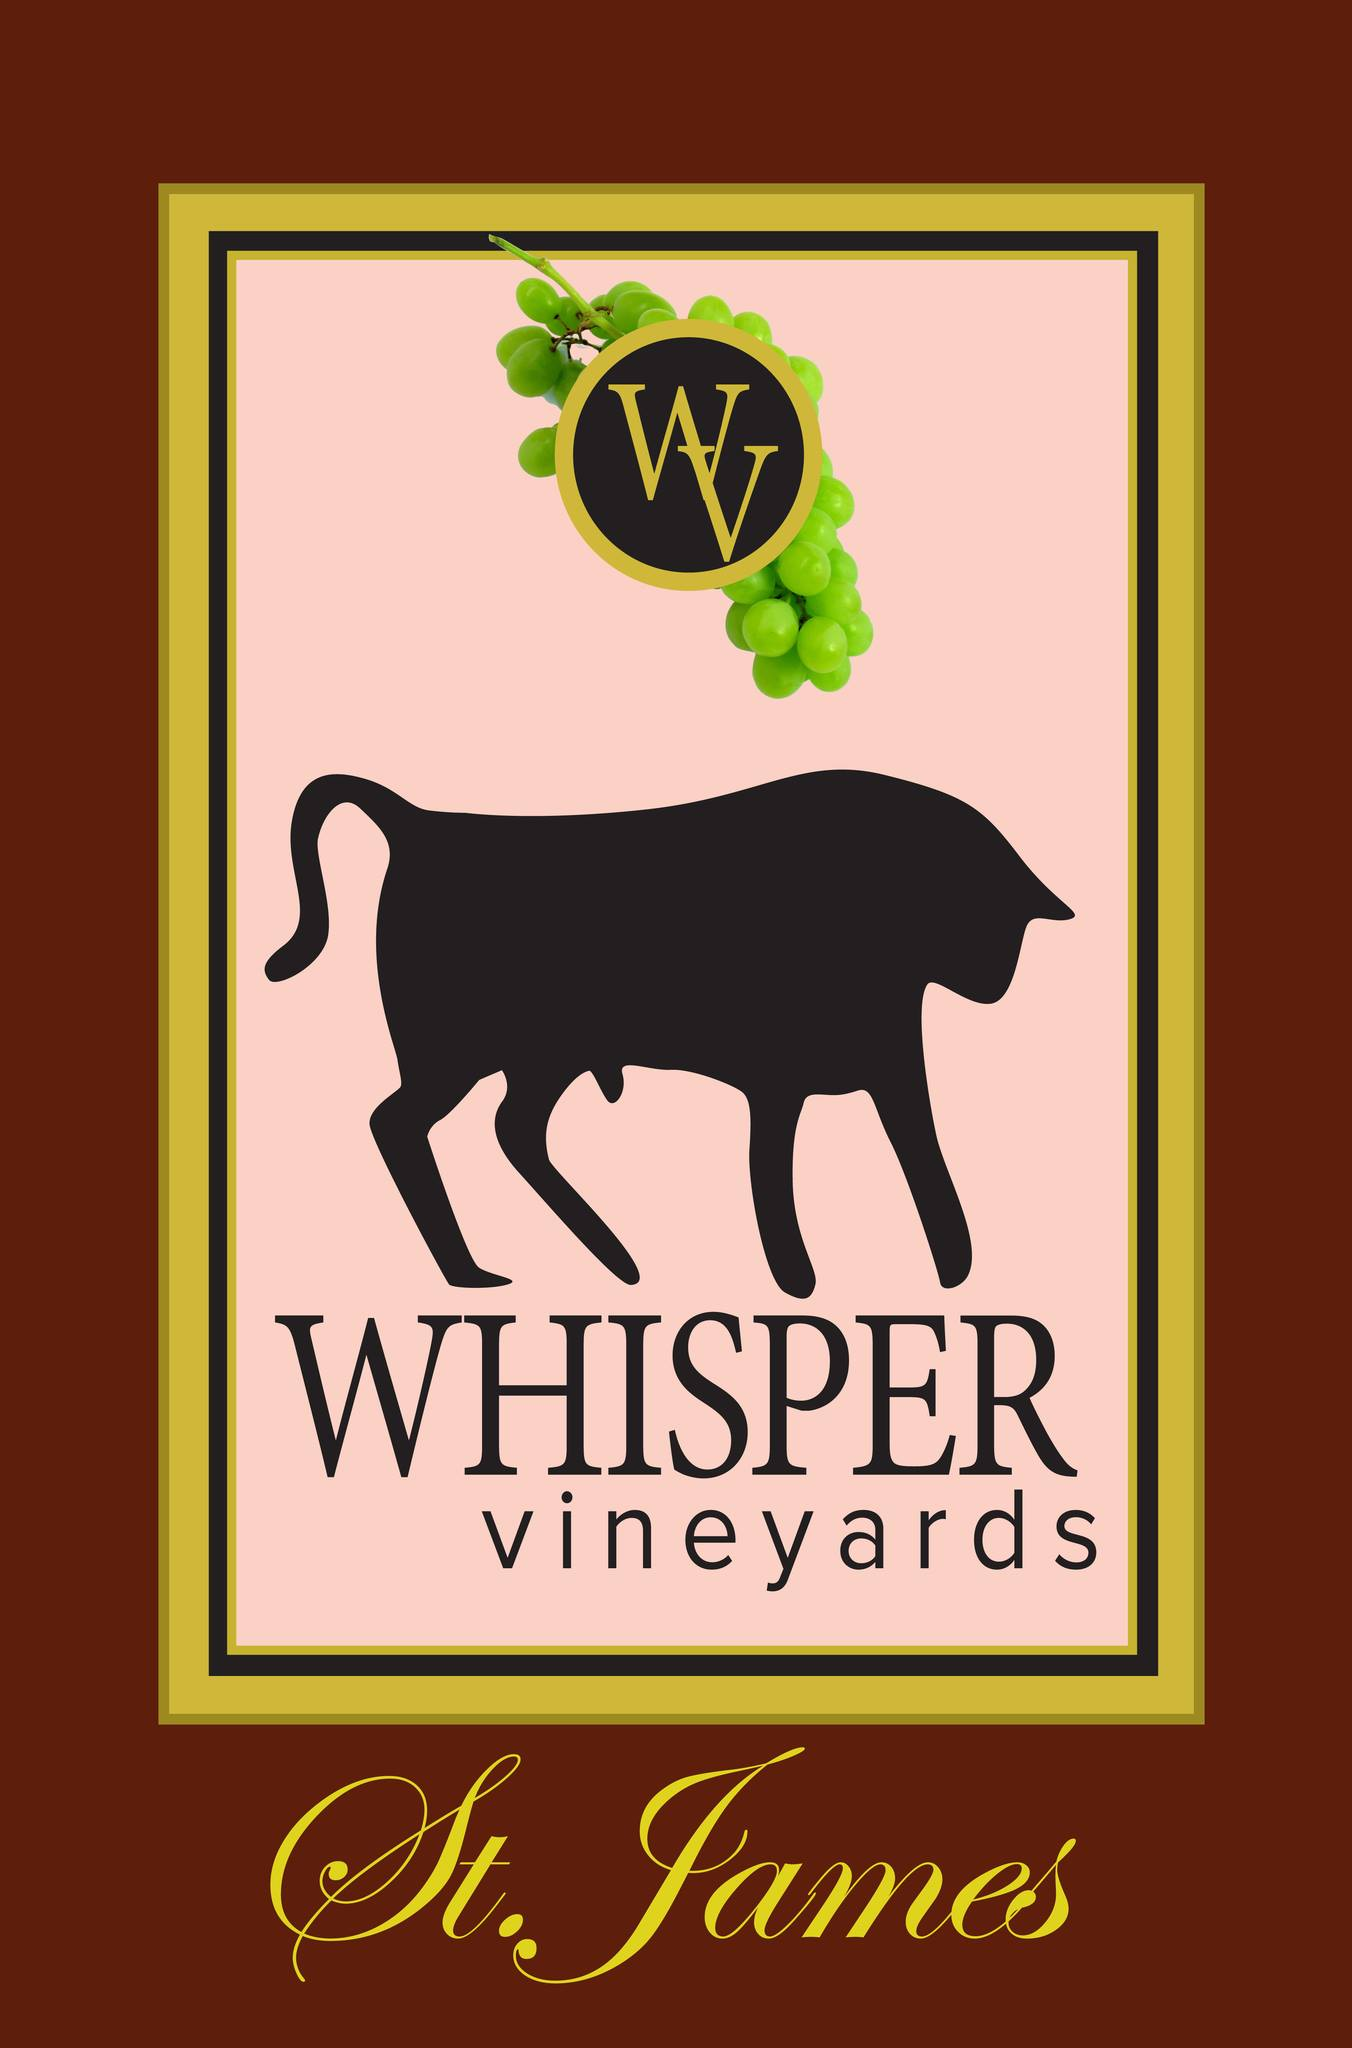 WhisperVineyards